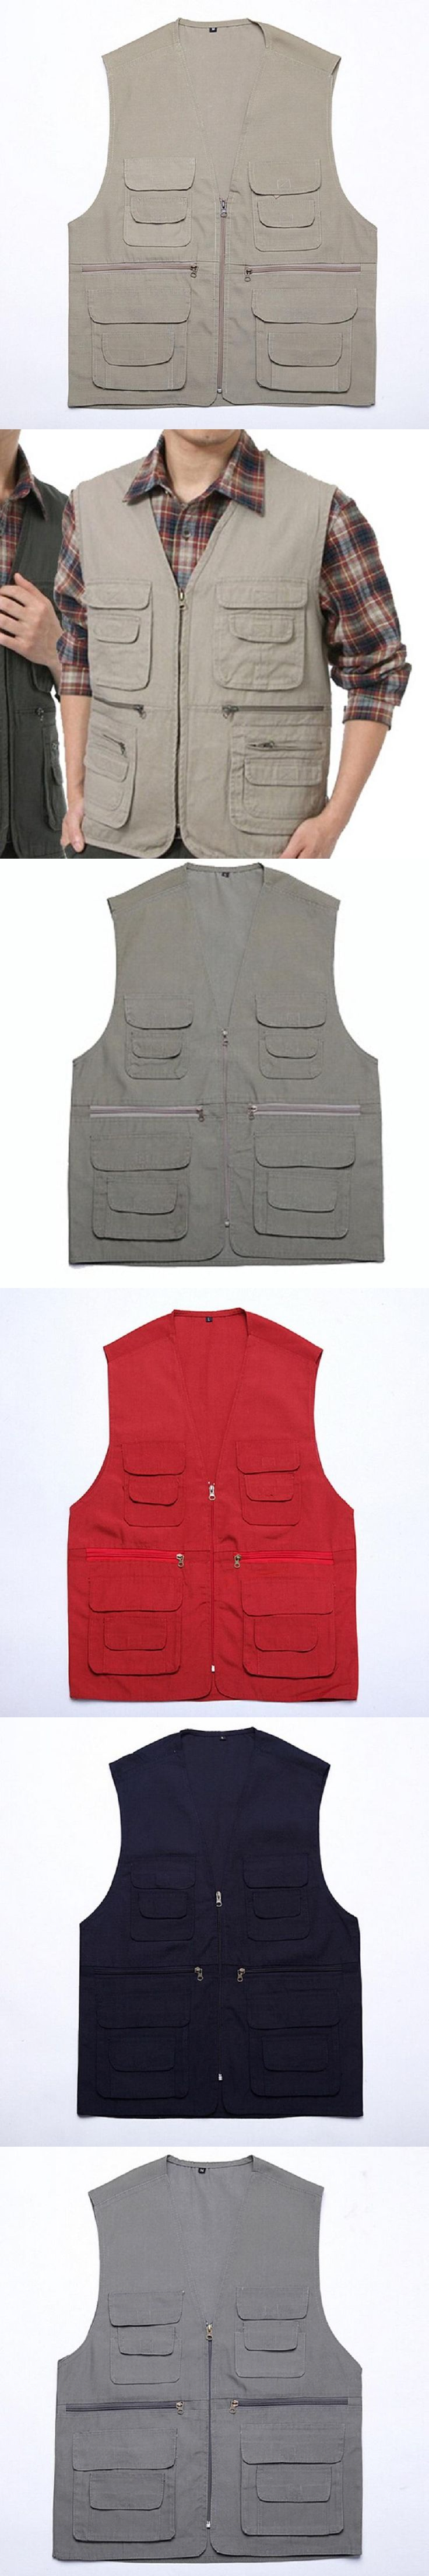 Spring Autumn Multi-pocket Jacket Men Vest Casual Photograph Vest Sleevesless Waistcoat 5 Colors Asian/Tag Size M-2XL